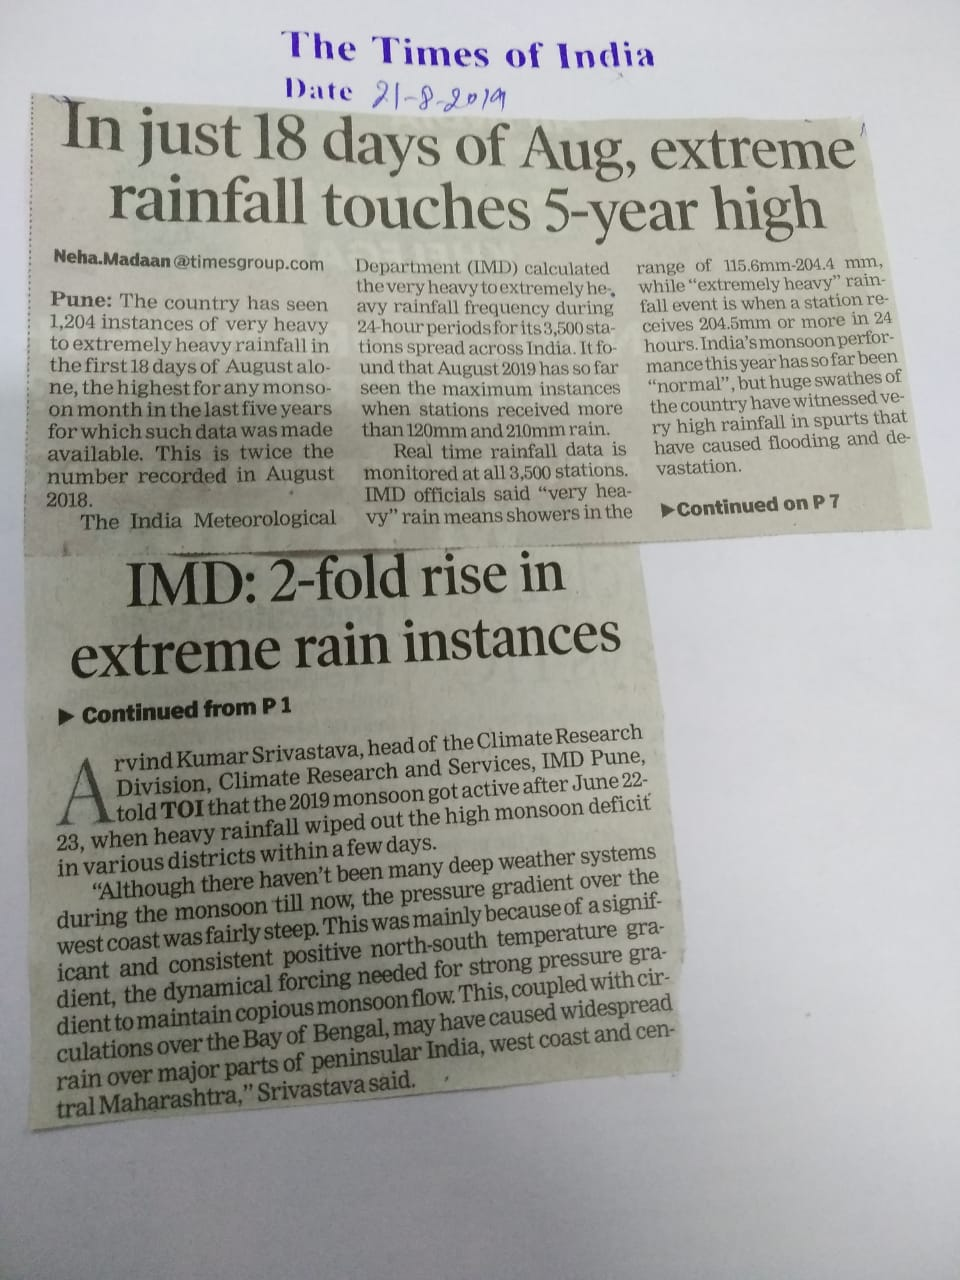 In just 18 days of Aug, extreme rainfall touches 5-year high- IMD: 2-fold rise in extreme rain instances.